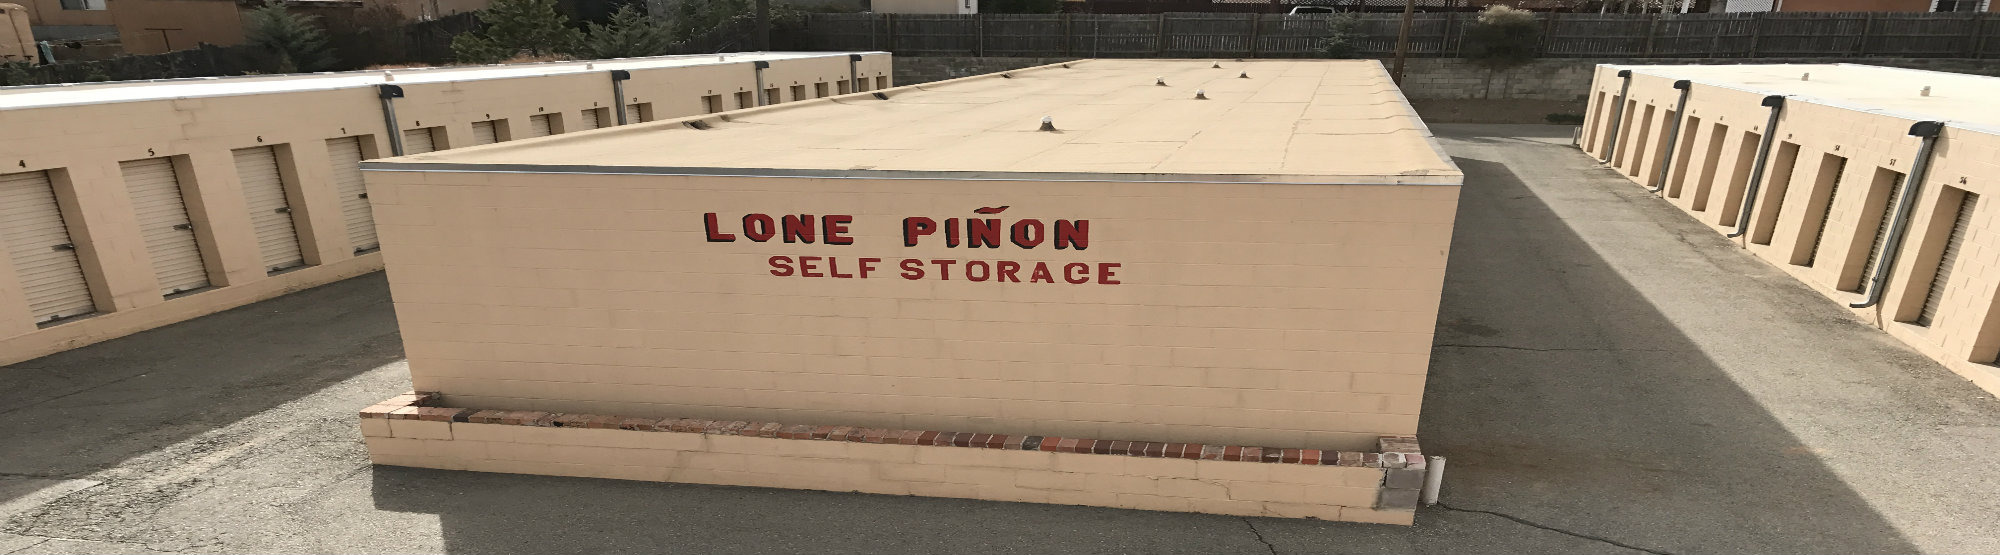 Lone Pinon Self Storage